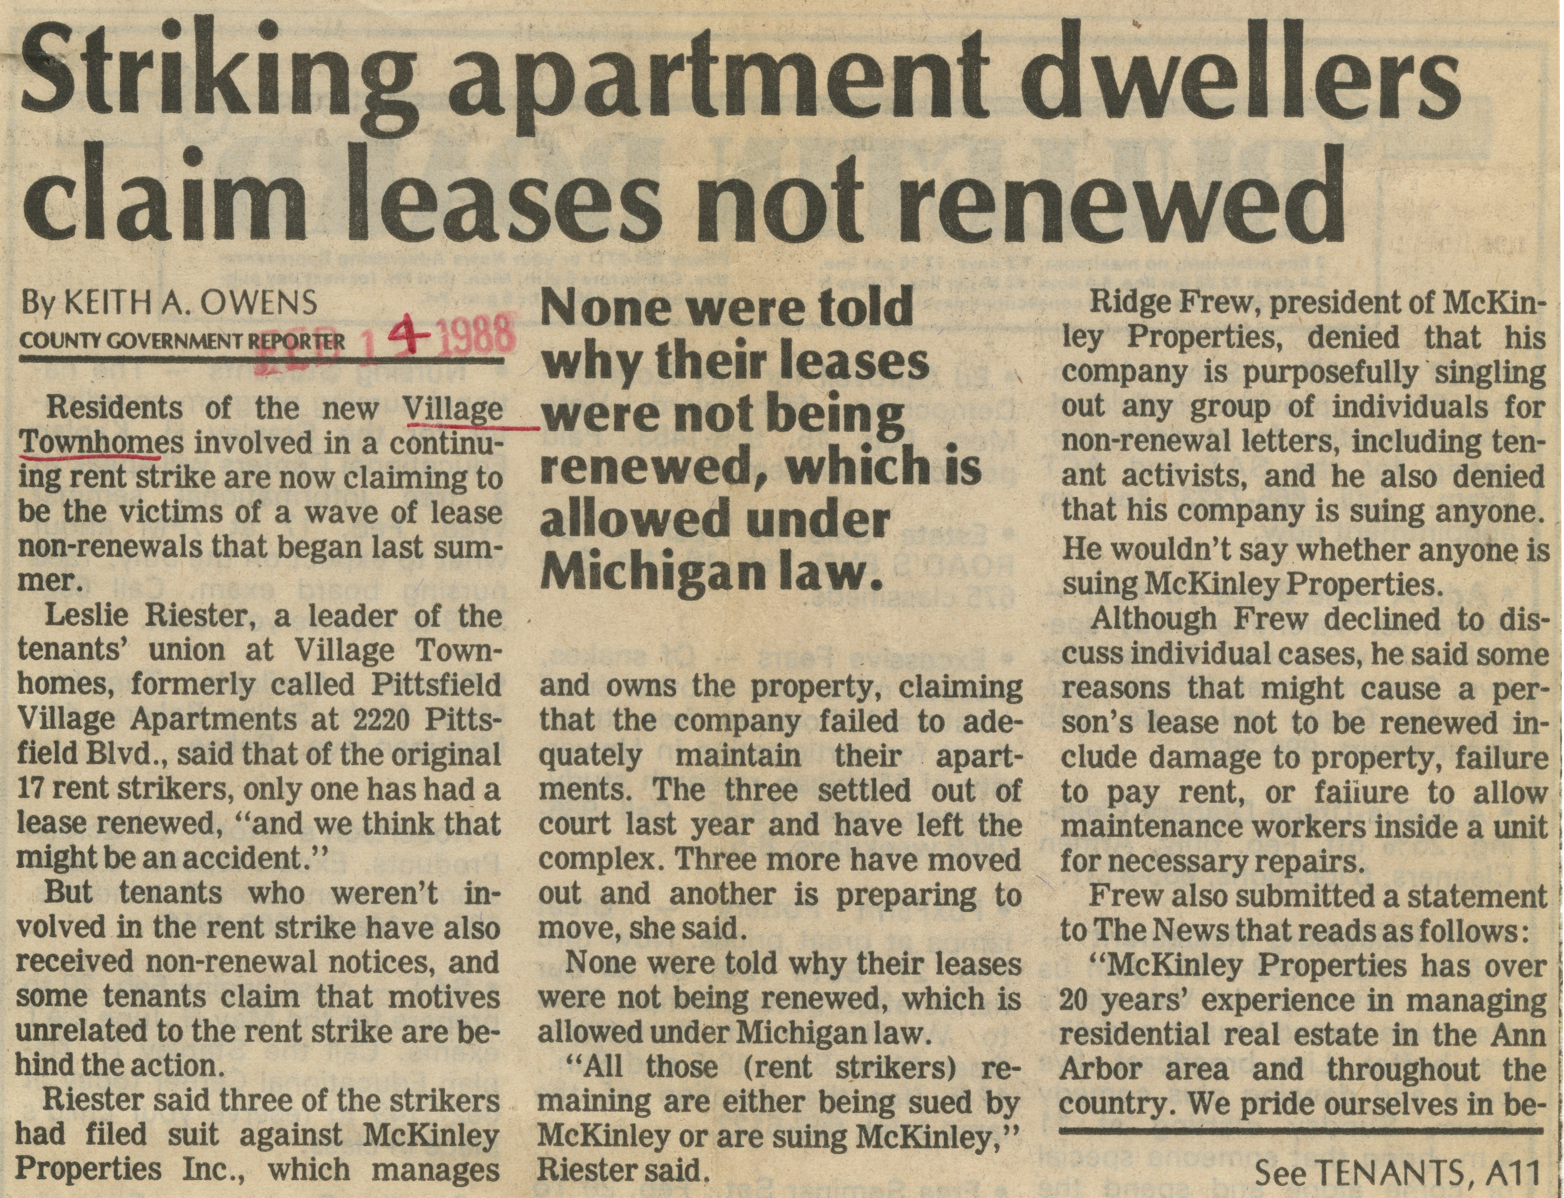 Striking apartment dwellers claim leases not renewed image